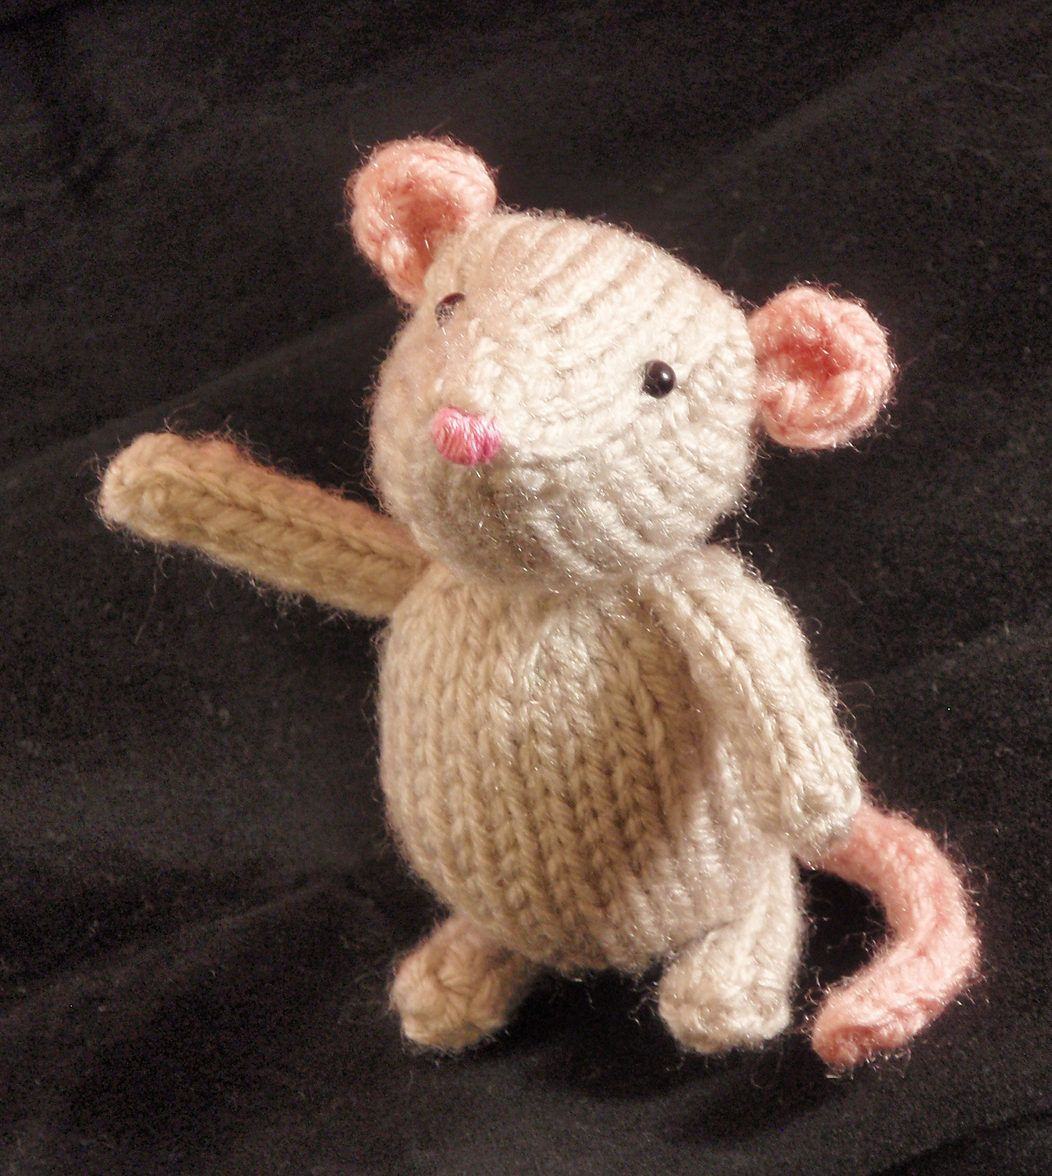 Best Of Free Knitting Pattern for Marisol Mouse This Teacup Free Knitting Patterns toys Of Delightful 41 Pictures Free Knitting Patterns toys